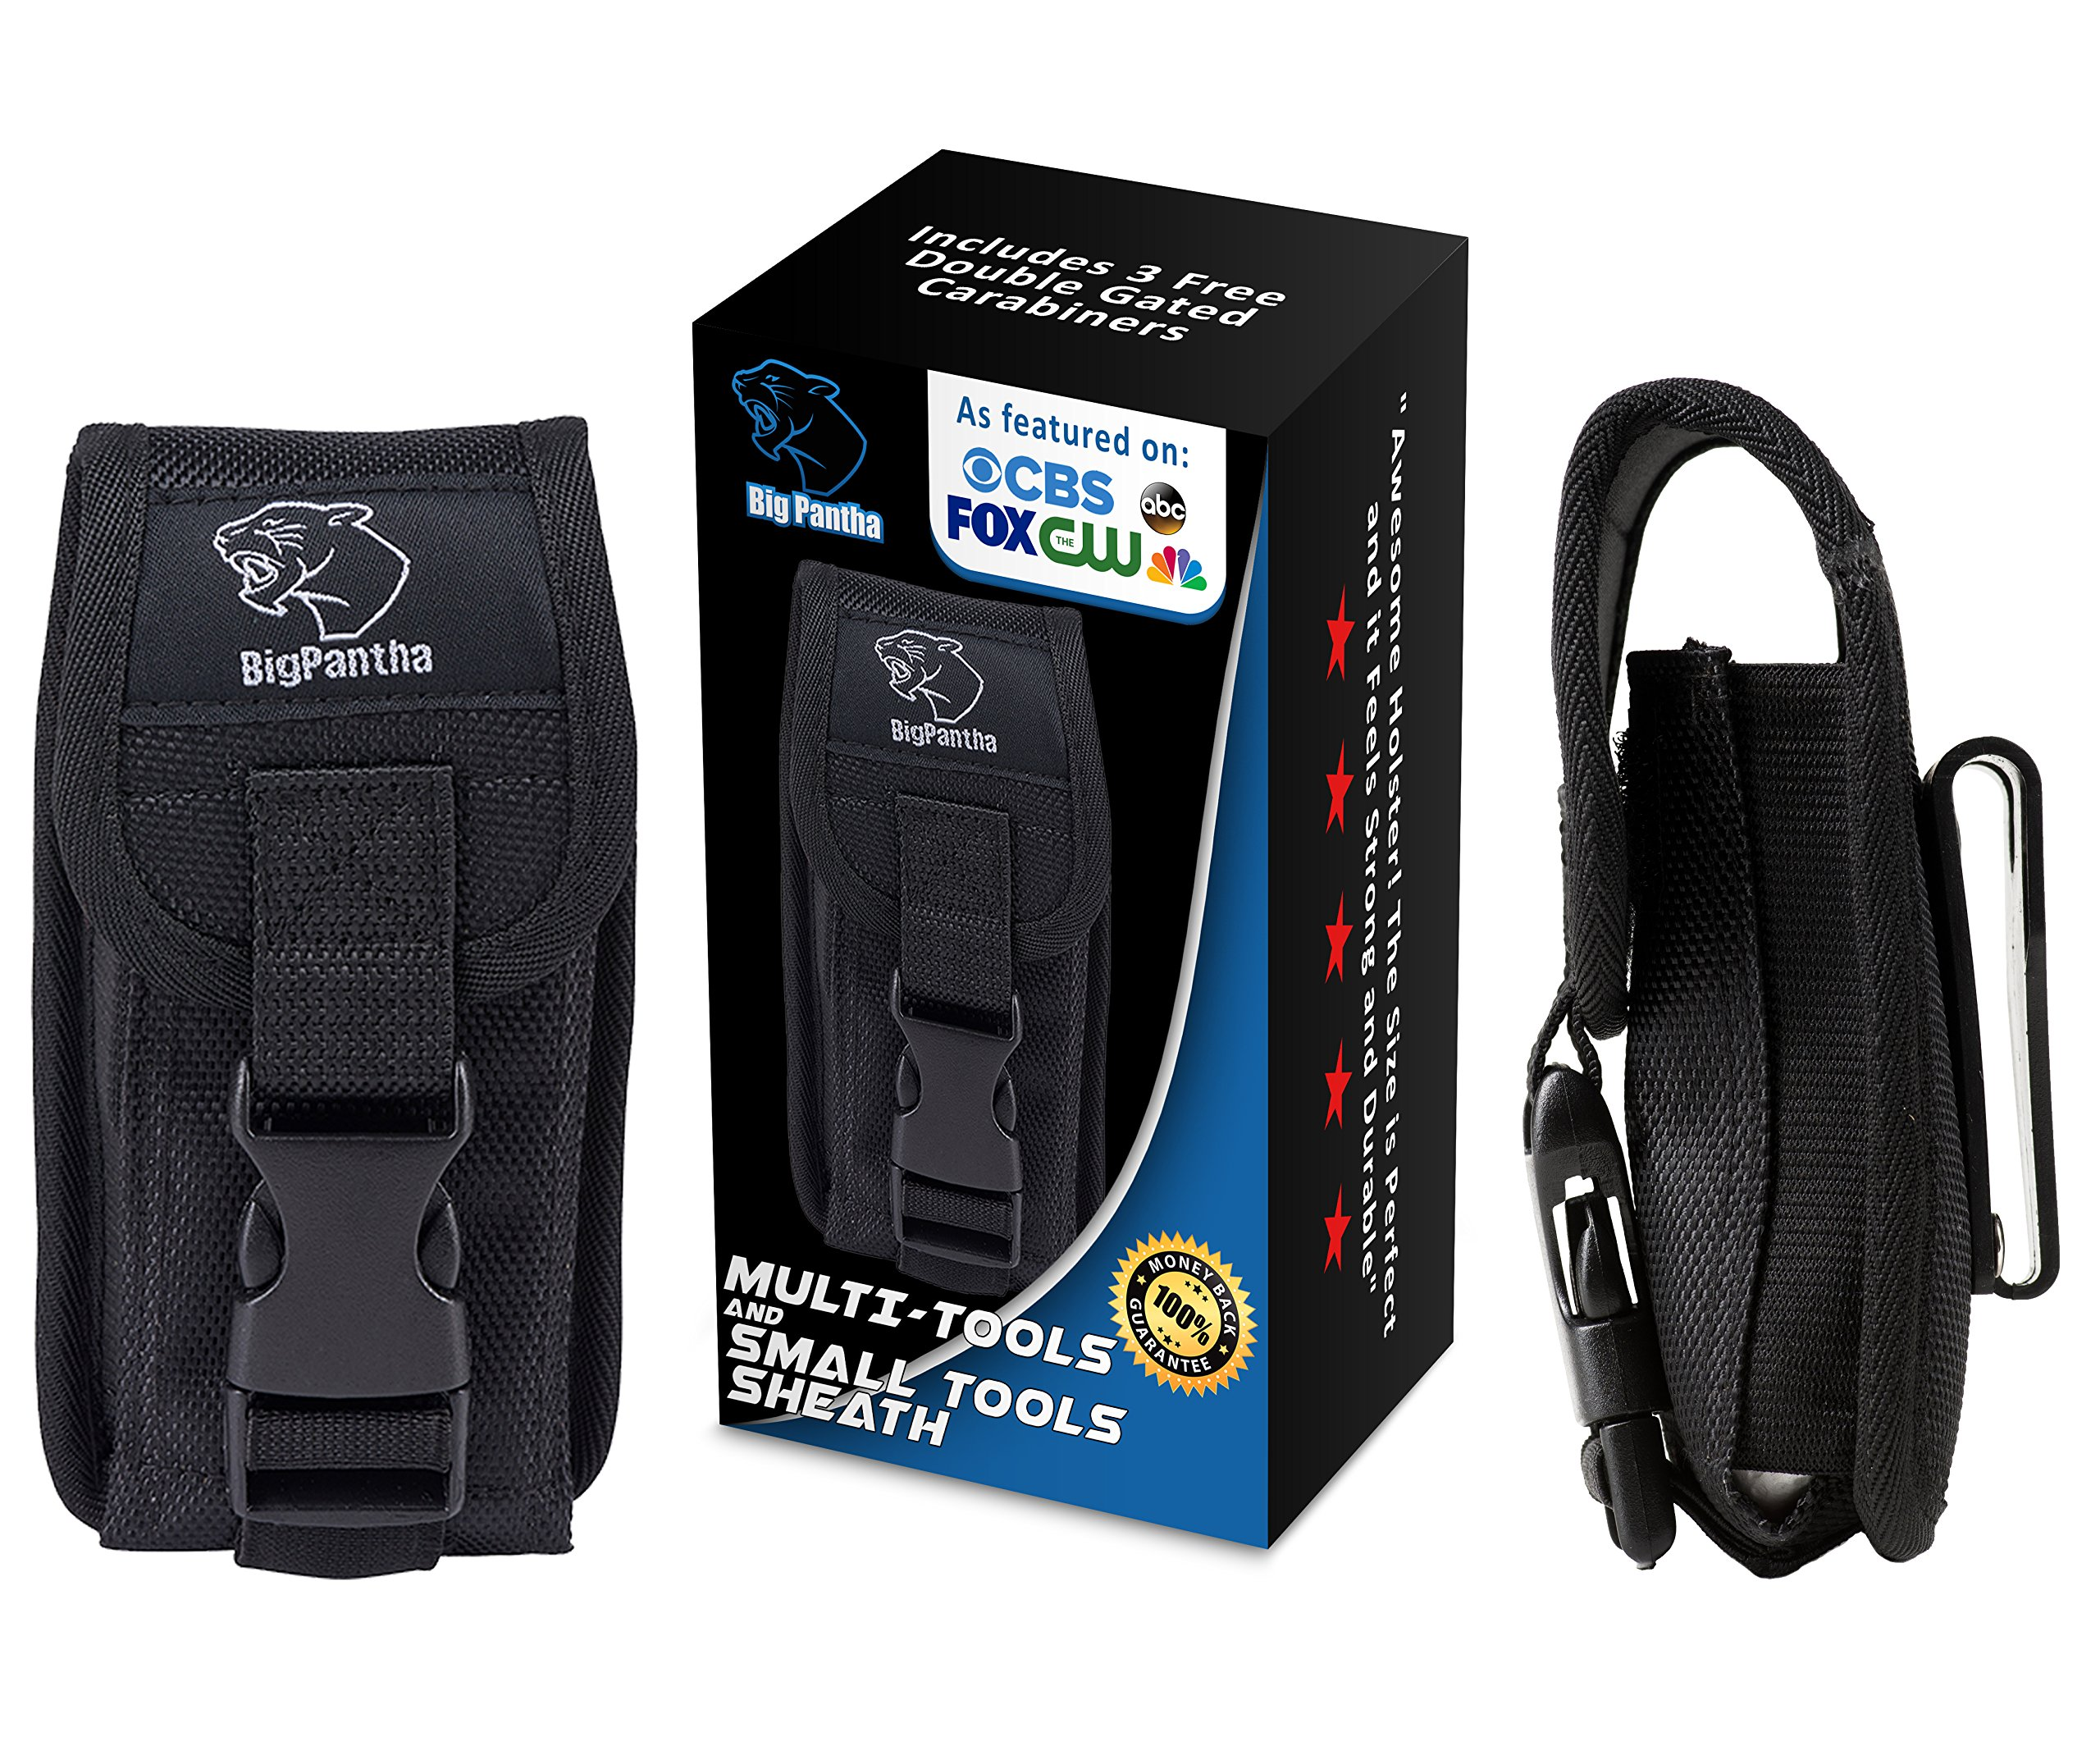 Ultra Multi-Purpose 5.5'' Multi Tool Sheath/Pouch to Keep Essential Small Tools Close To Hand. For MultiTool Folding Knife Flashlight or Cellphone etc. Includes BONUS 3 x Handy Carabiner Hooks!